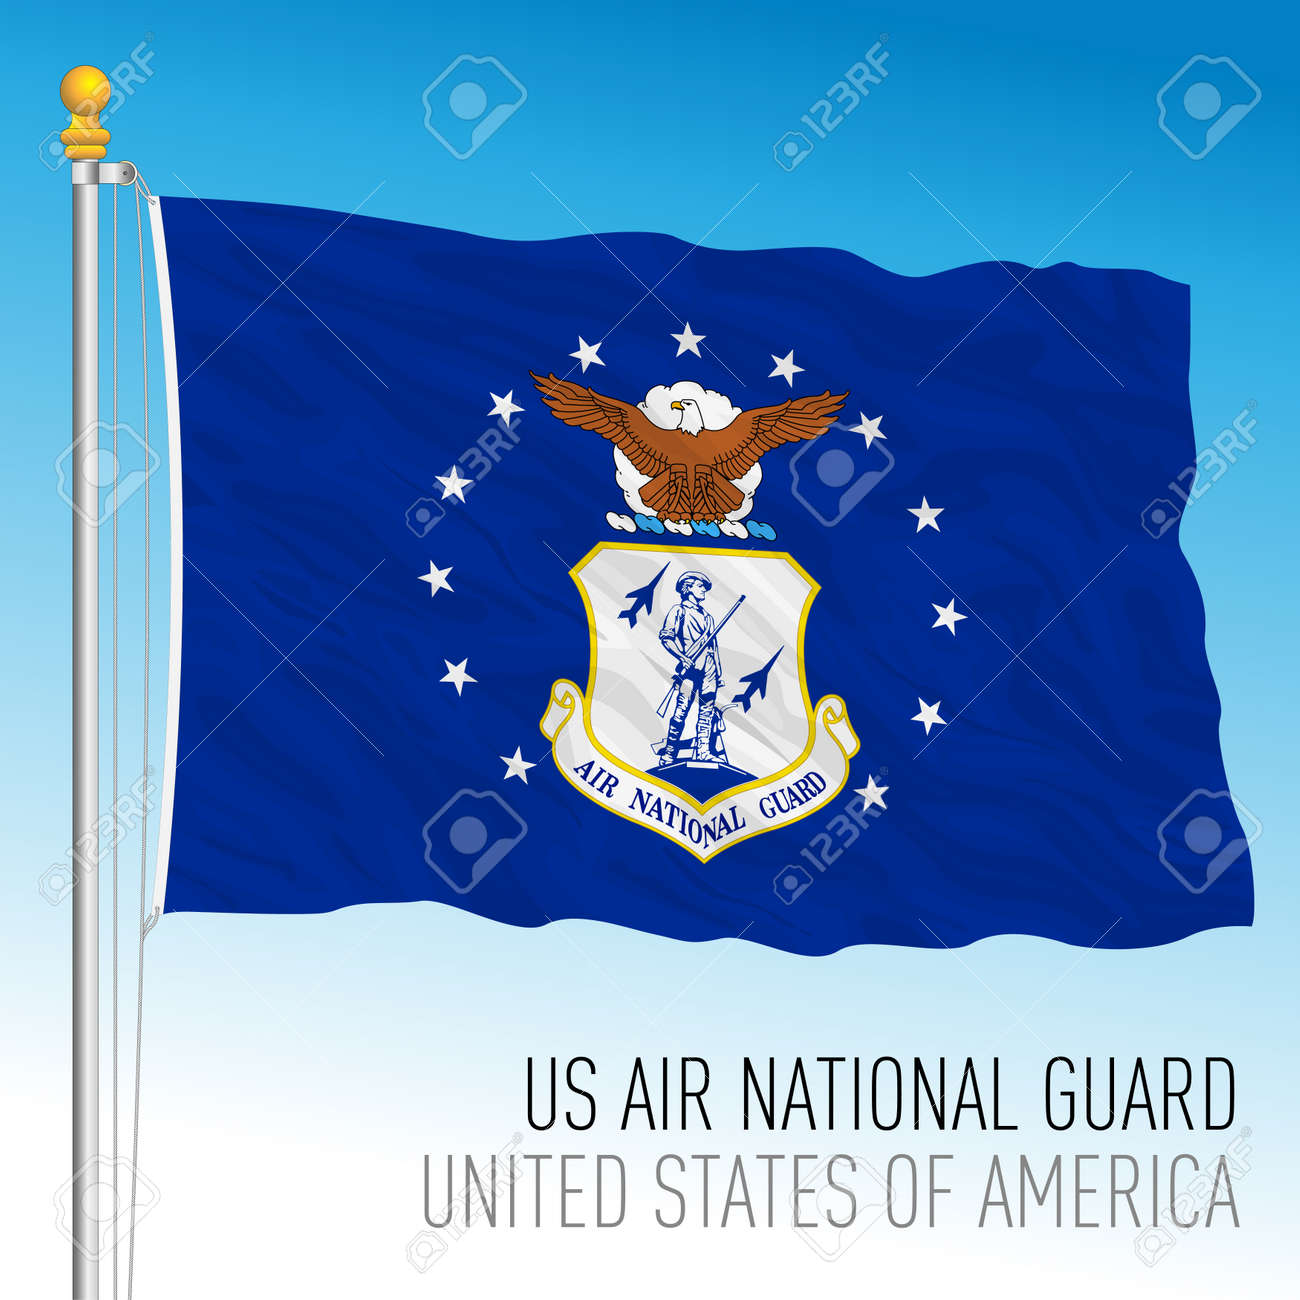 US Air National Guard flag, United States of America, vector illustration - 172957706